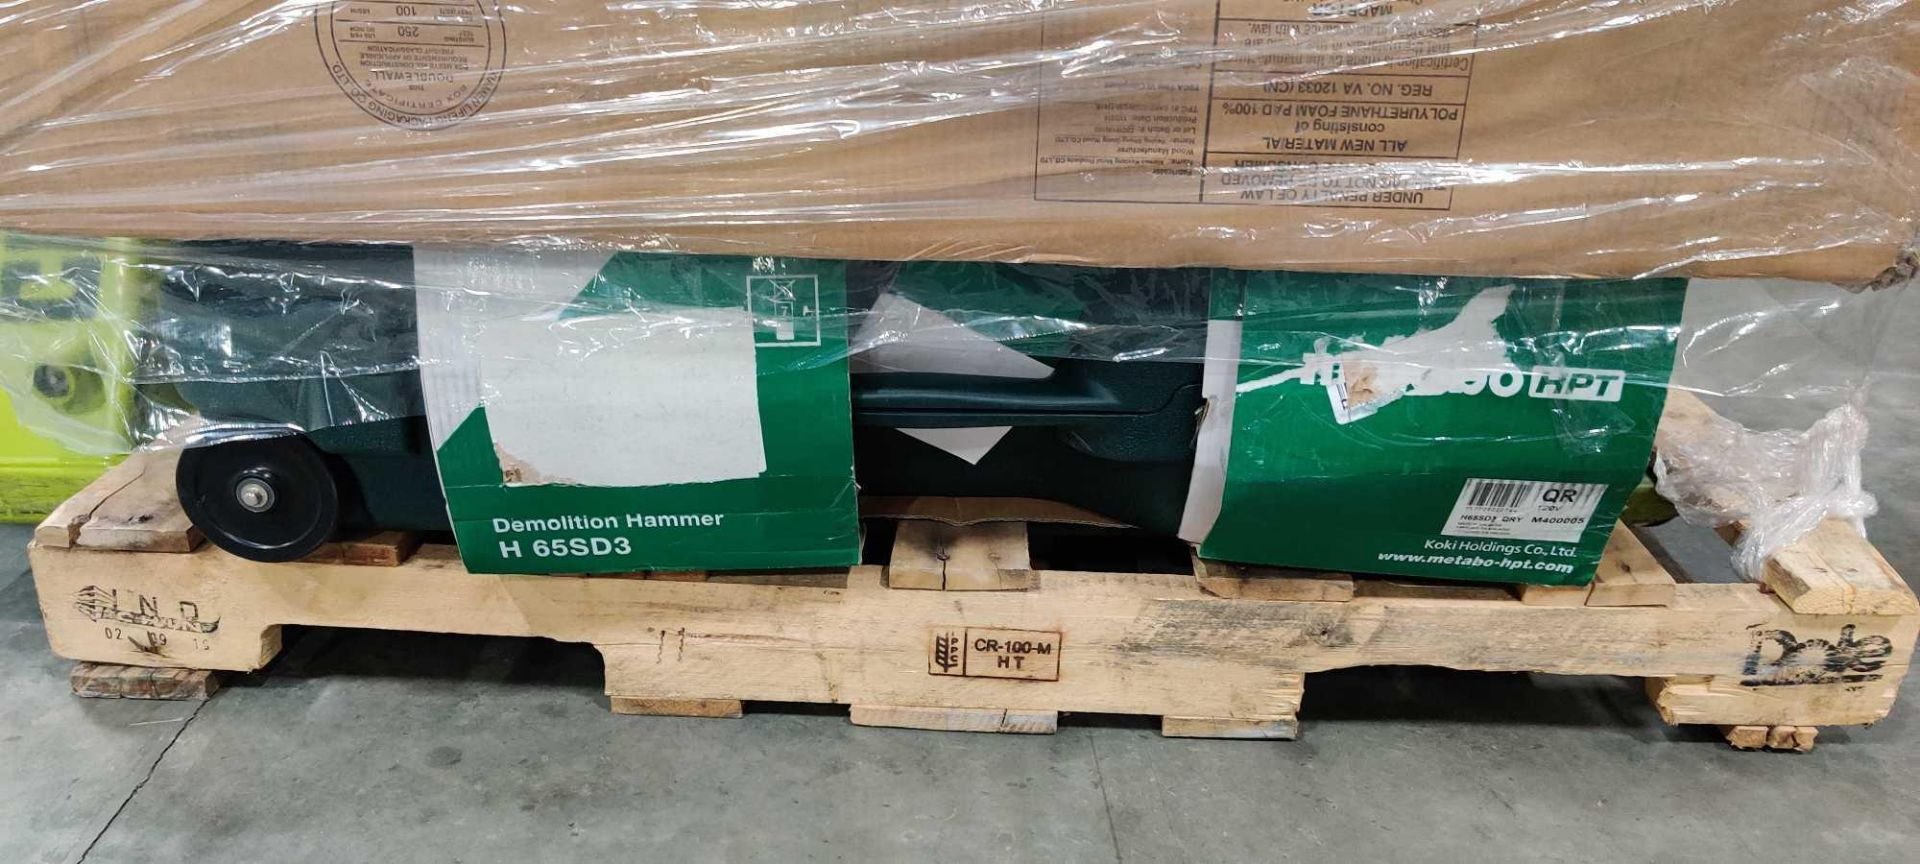 Single Pallet - Image 17 of 18